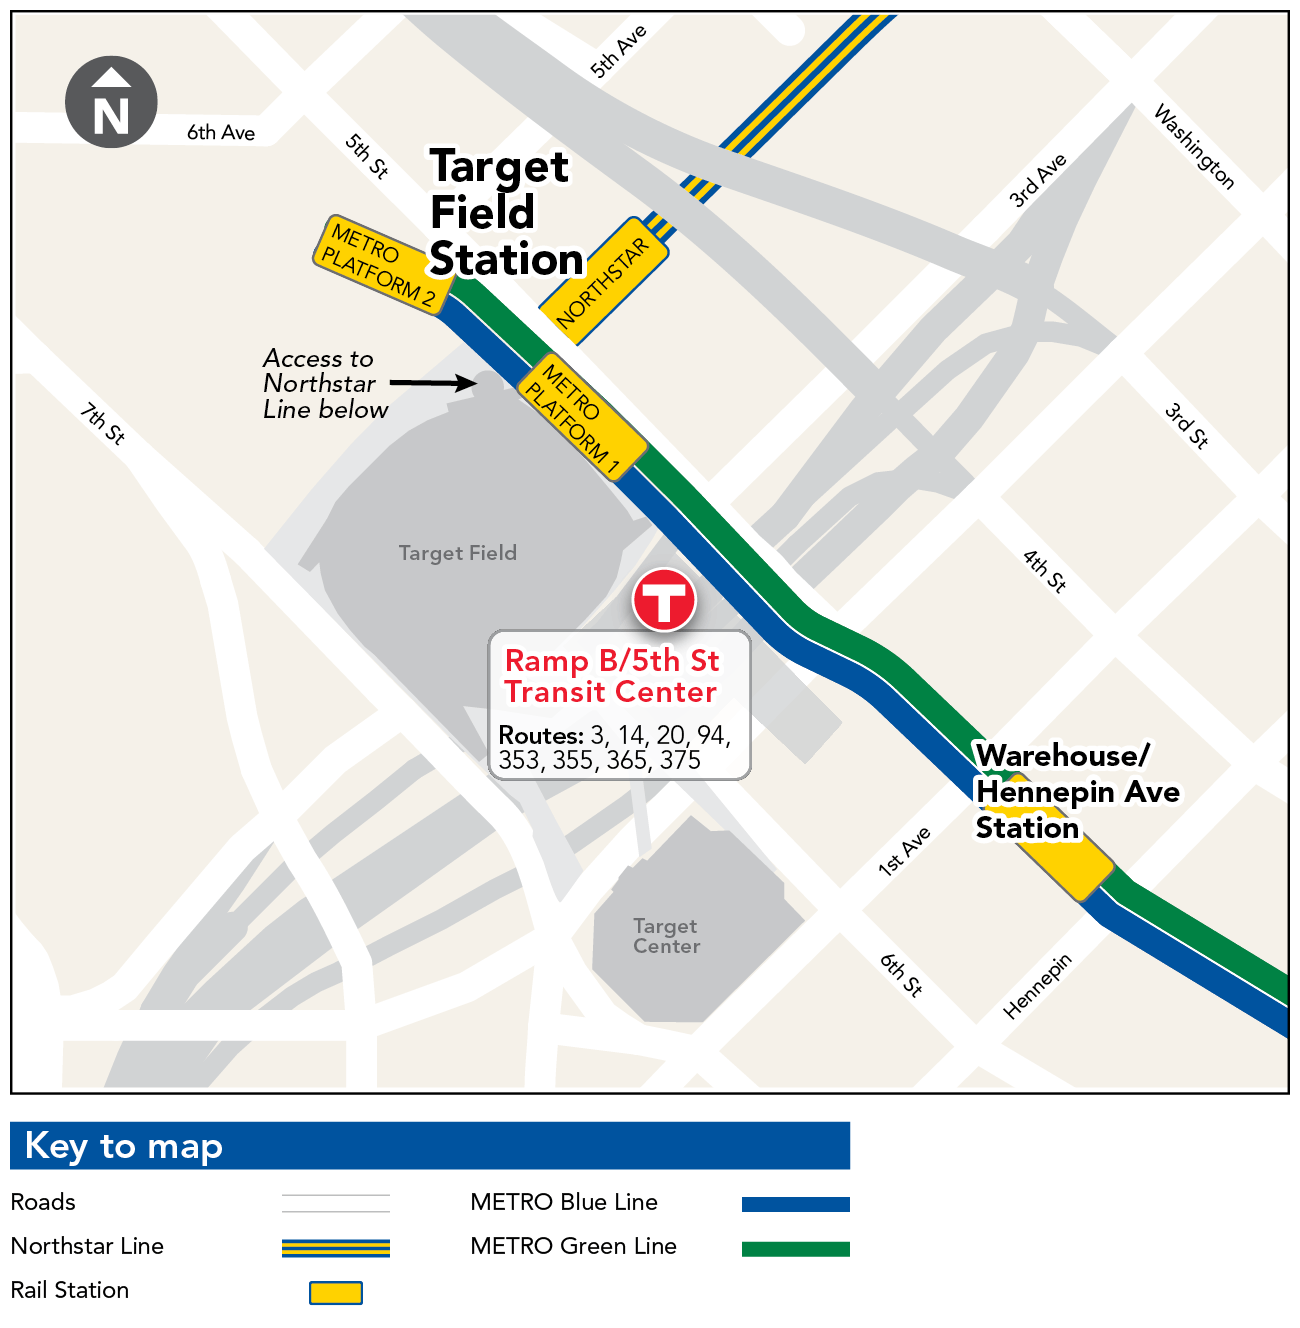 Target Field Station Map